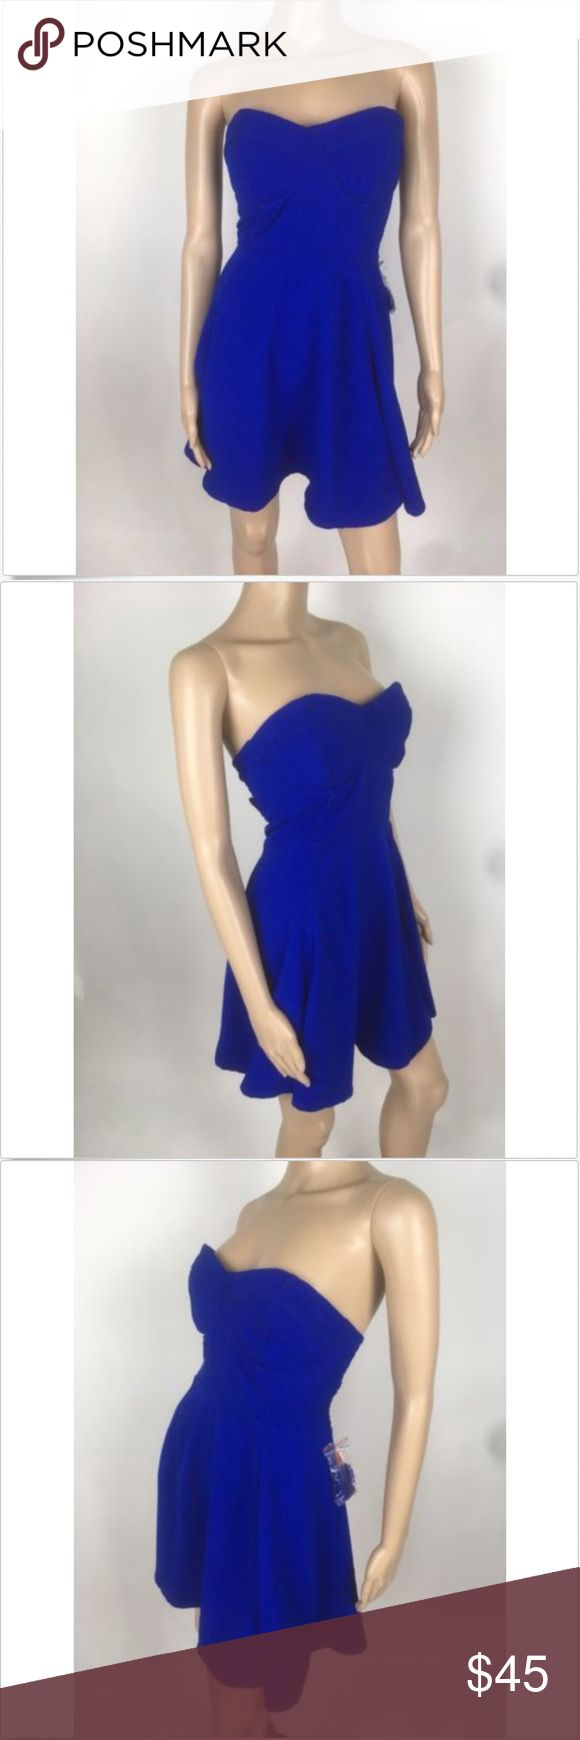 """NWOT Minkpink Blue Strapless Empire Waist Dress Minkpink new without tags women's blue strapless or adjustable spaghetti strap (removable) Stretch empire waist mini dress sz large Measurements laying flat Armpit to Armpit 17"""" Waist  17"""" Length 26"""" MINKPINK Dresses Mini"""